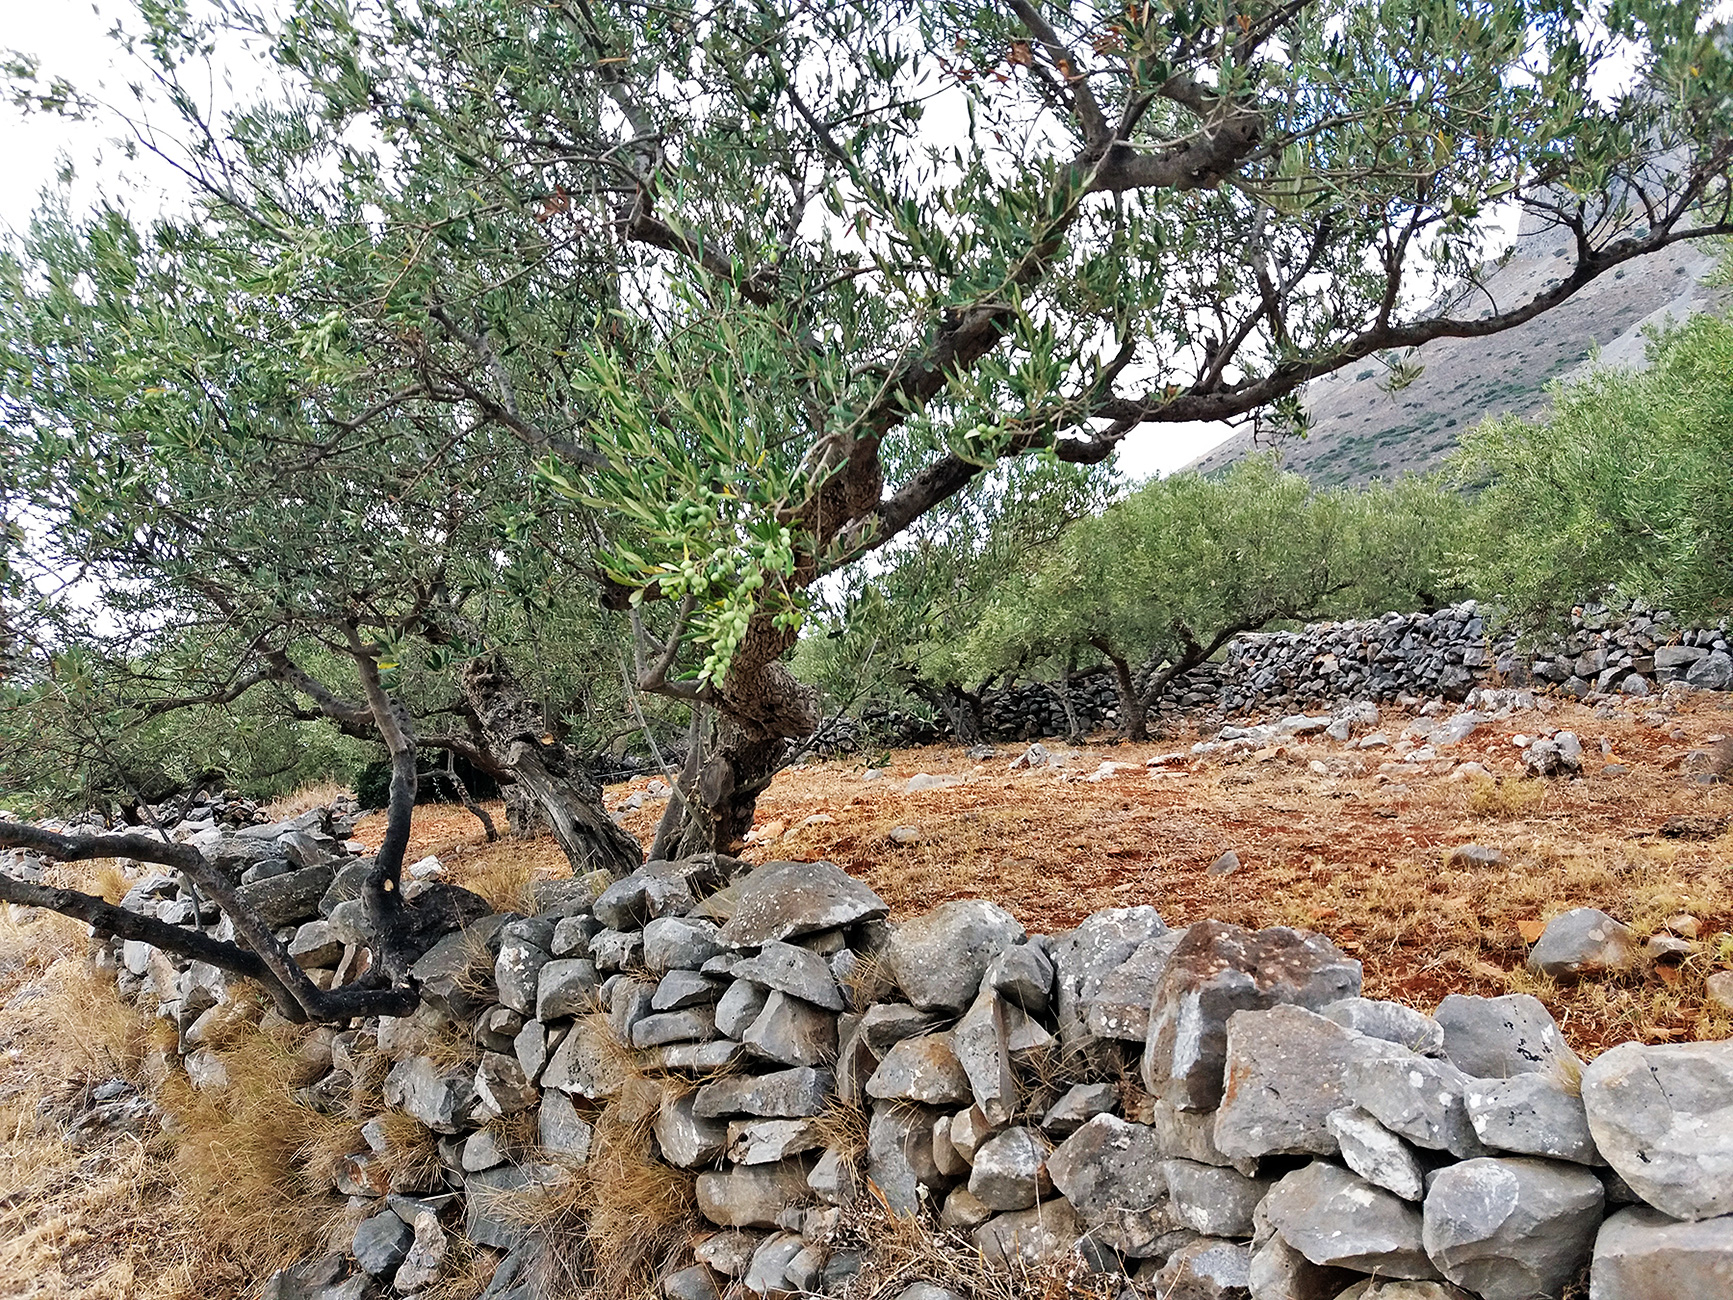 An olive grove with dry stone walls in Sotirianika, Mani